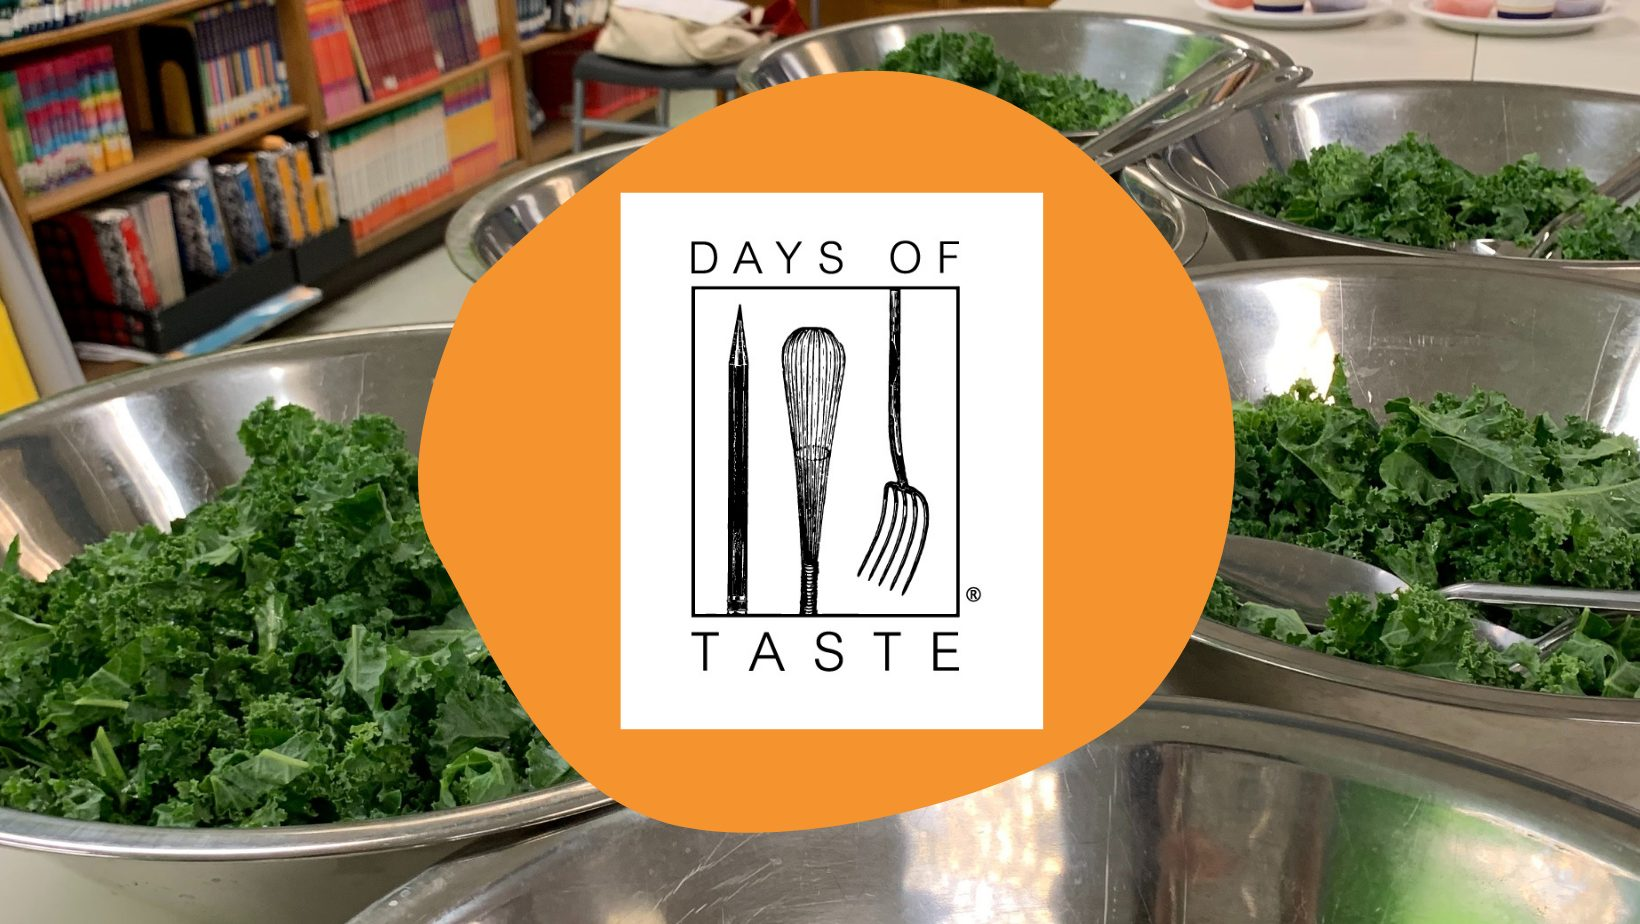 Days of Taste logo and salad